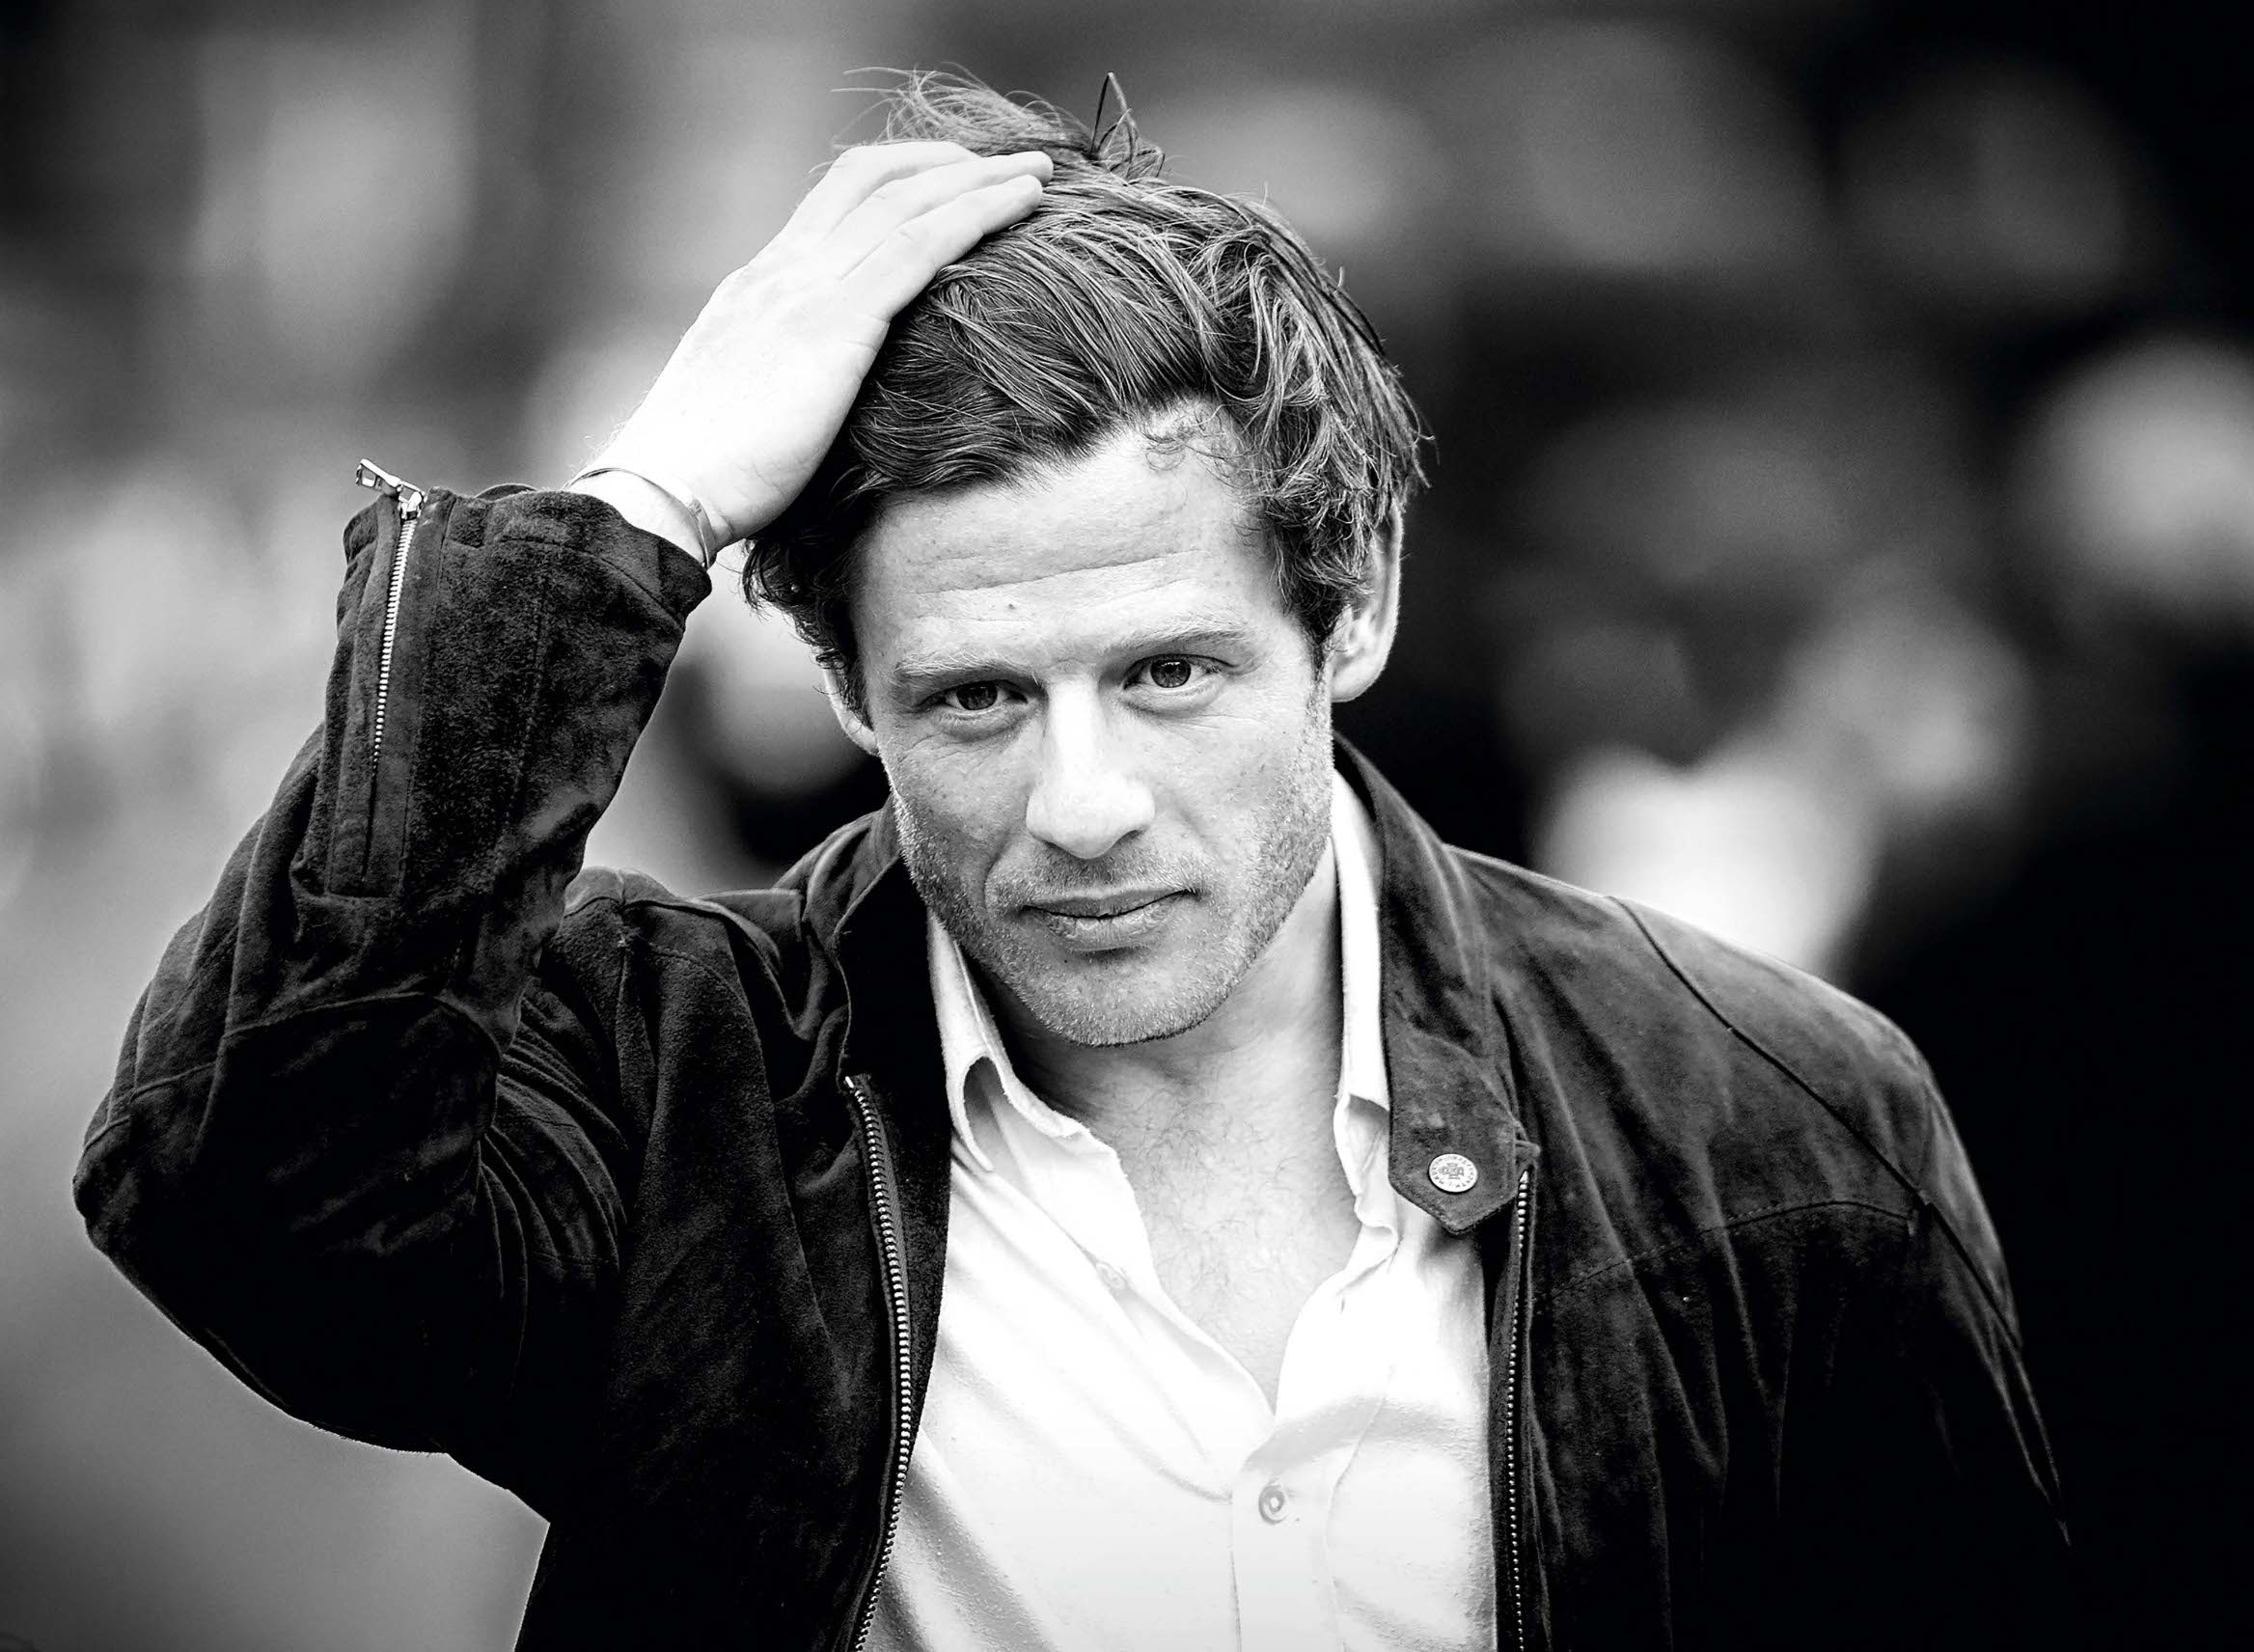 LONDON, UNITED KINGDOM - JUNE 11: (EMBARGOED FOR PUBLICATION IN UK NEWSPAPERS UNTIL 24 HOURS AFTER CREATE DATE AND TIME) (EDITORS NOTE: This image was processed using digital filters) James Norton attends the Sentebale Audi Concert at Hampton Court Palace on June 11, 2019 in London, England. The charity Sentebale was founded by Their Royal Highnesses The Duke of Sussex and Prince Seeiso Bereng Seeiso of Lesotho in 2006. (Photo by Max Mumby/Indigo/Getty Images)